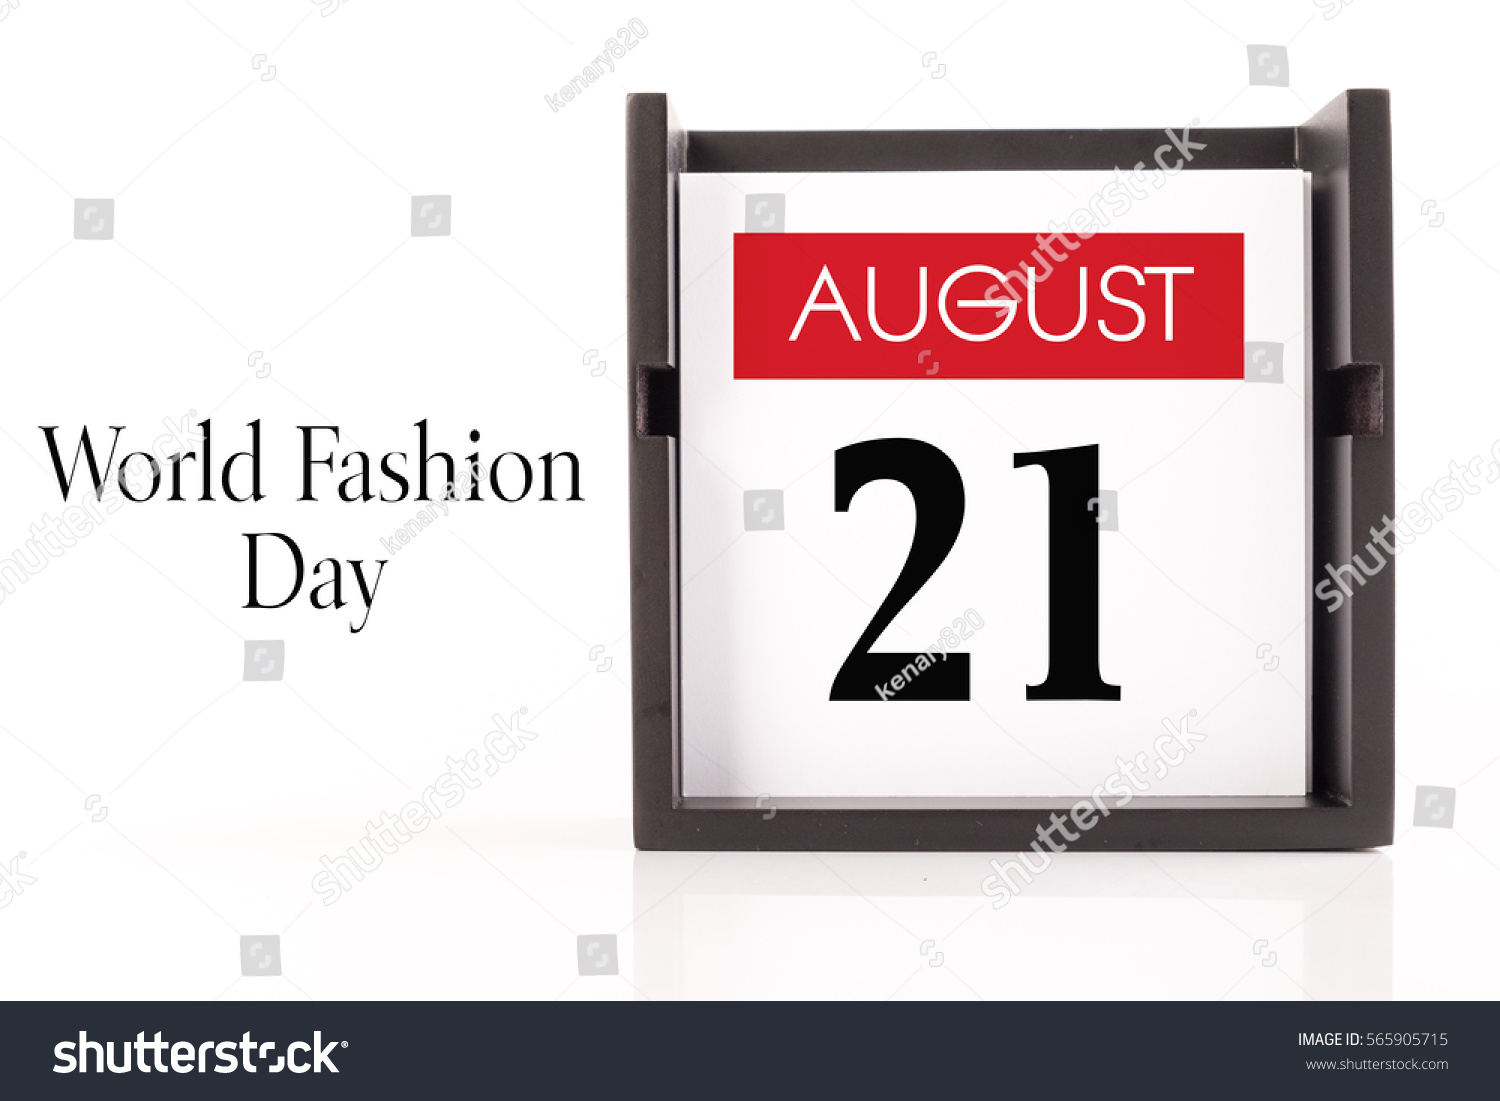 August 21 world fashion day calendar stock photo 565905715 august 21 world fashion day calendar on white background greeting message conceptual kristyandbryce Images